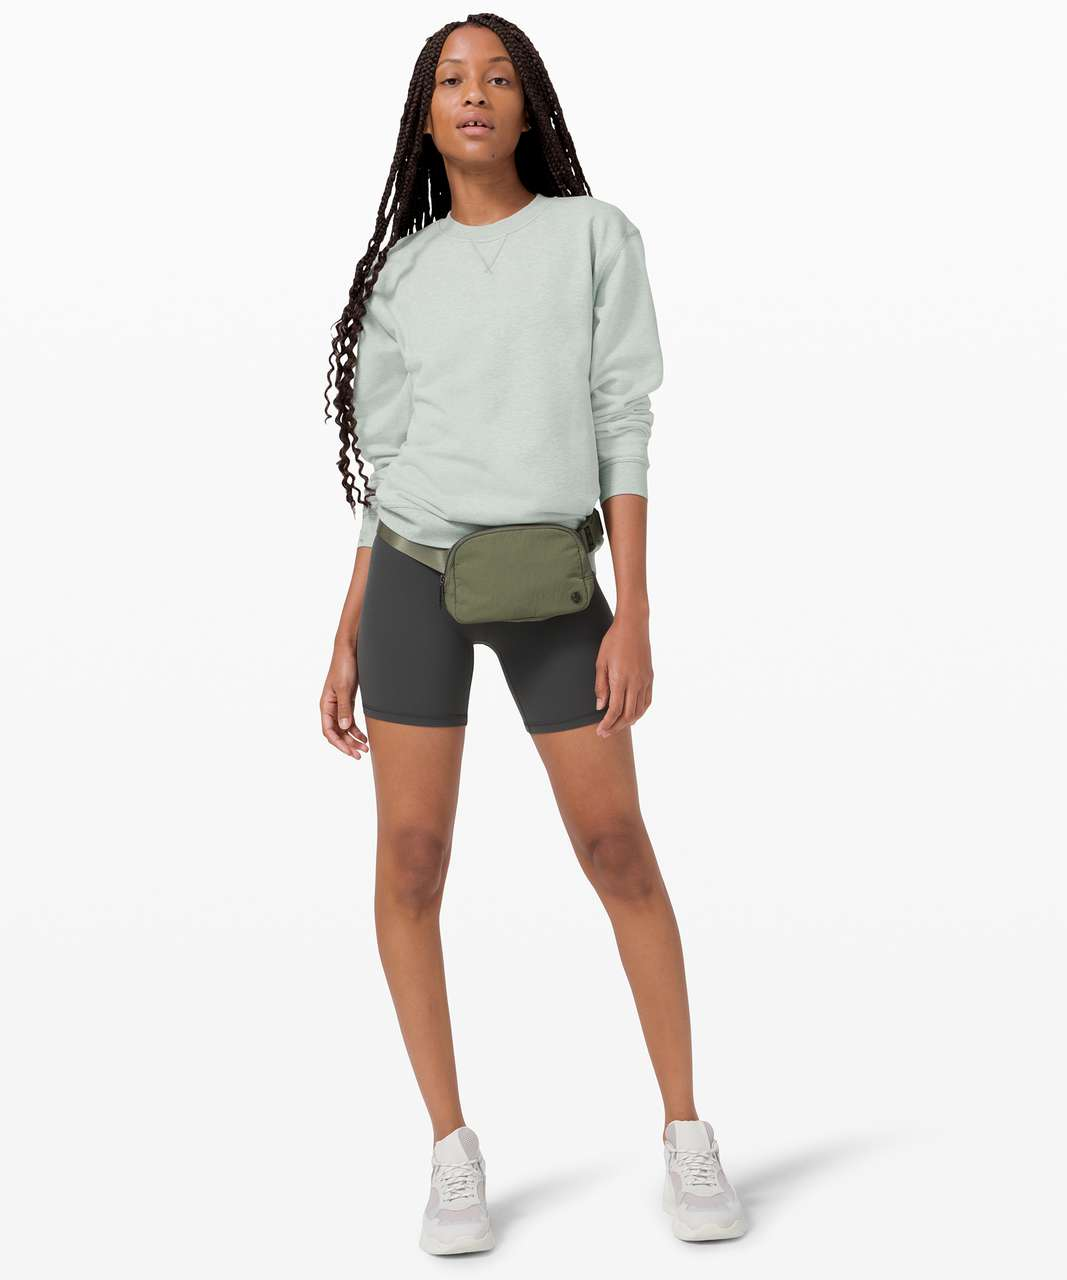 Lululemon All Yours Crew *Terry - Heathered Island Mist